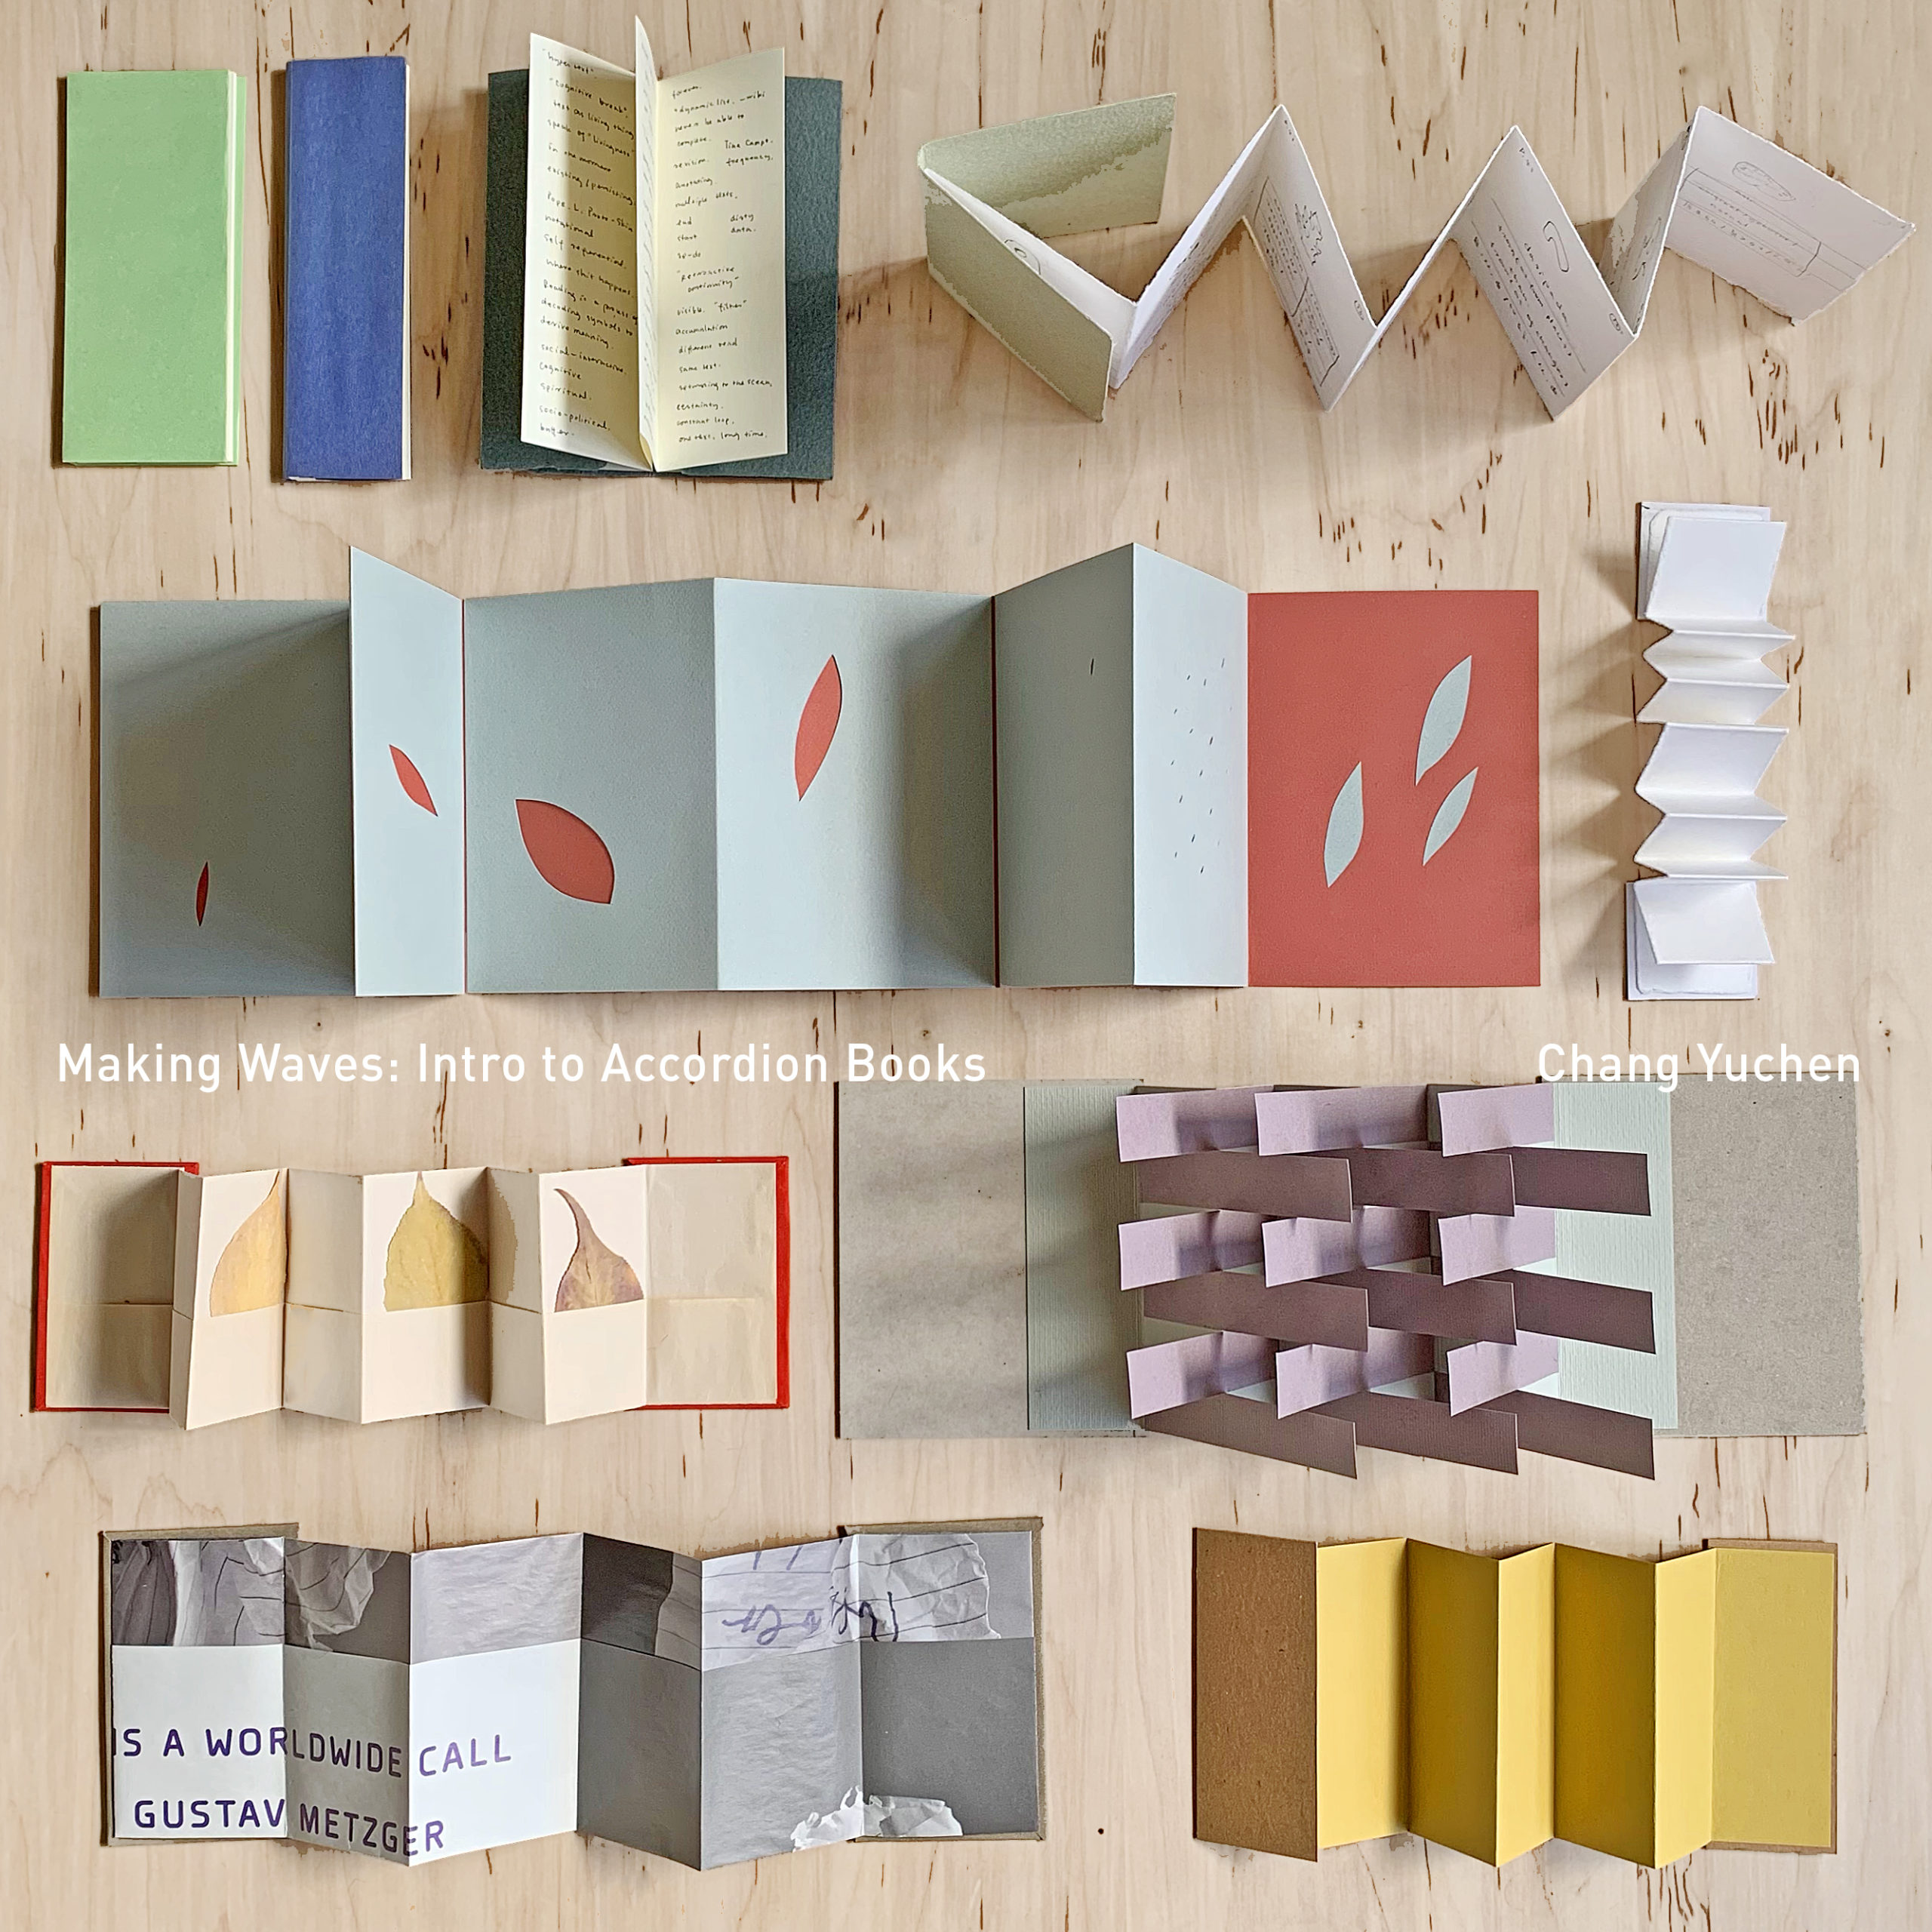 Several colorful examples of accordion fold books are spread out on a wooden table. The title of the class and name of the teacher are typed on the image.